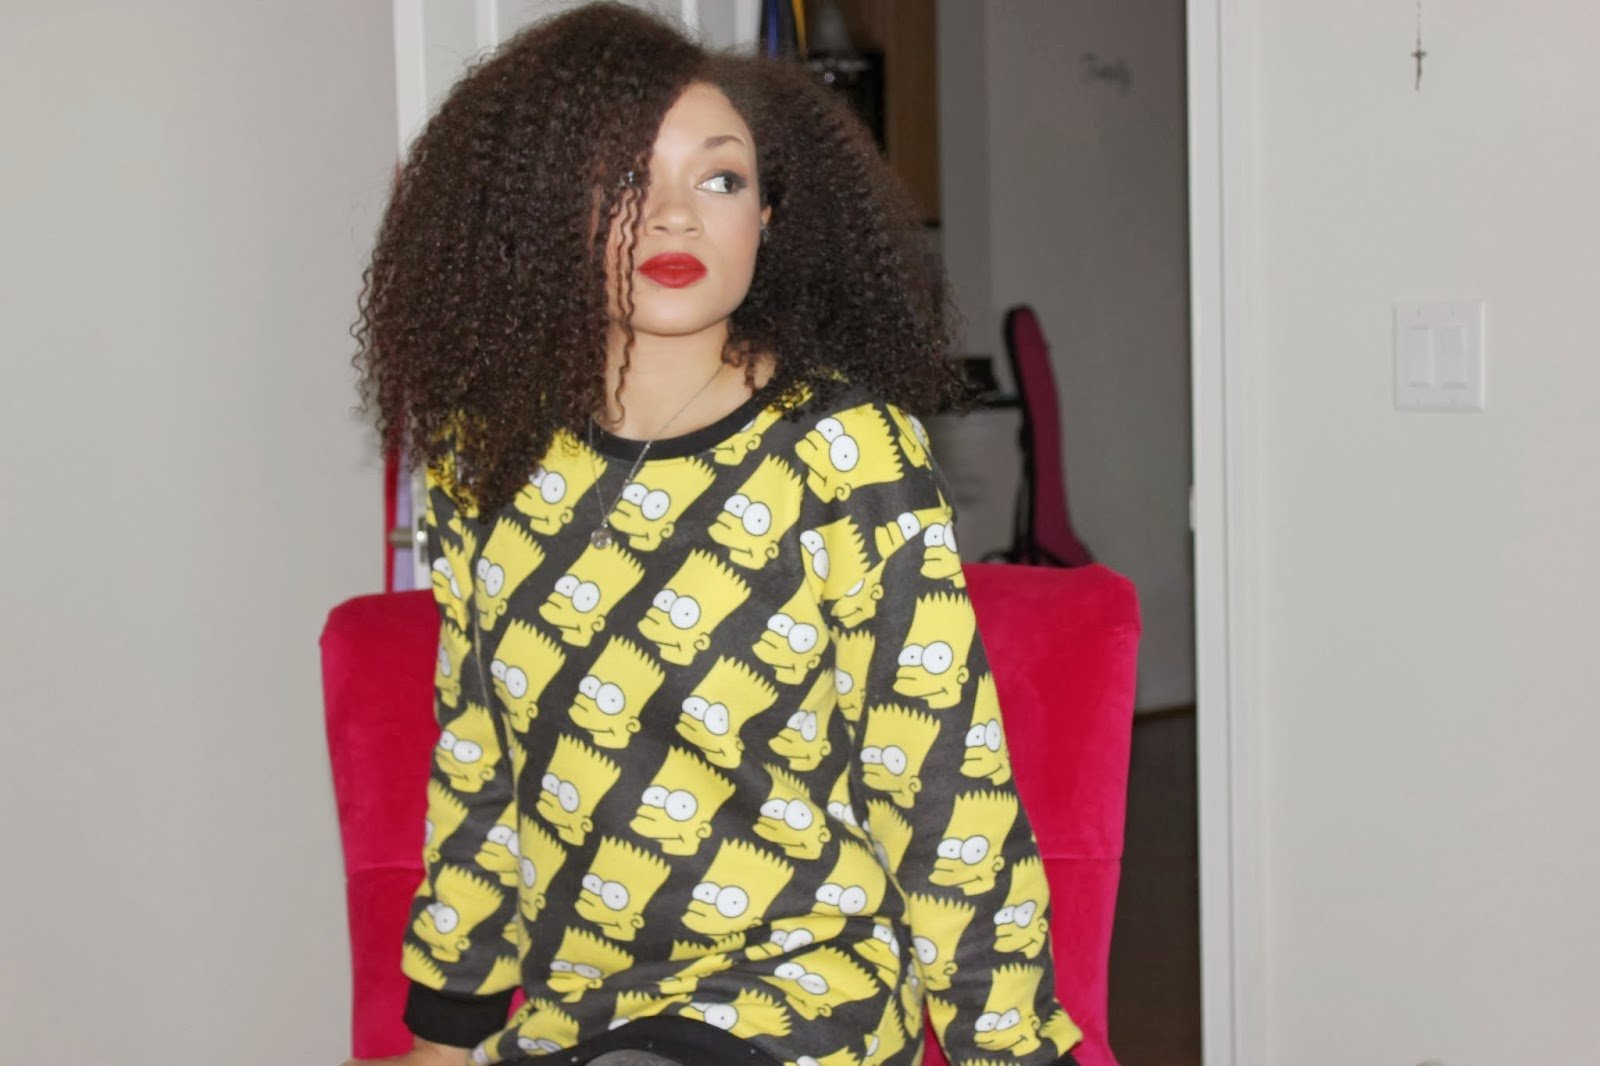 Elle 'aka' DenimPixie 'bka' Quest For The Perfect Curl, is Naturally Glam!